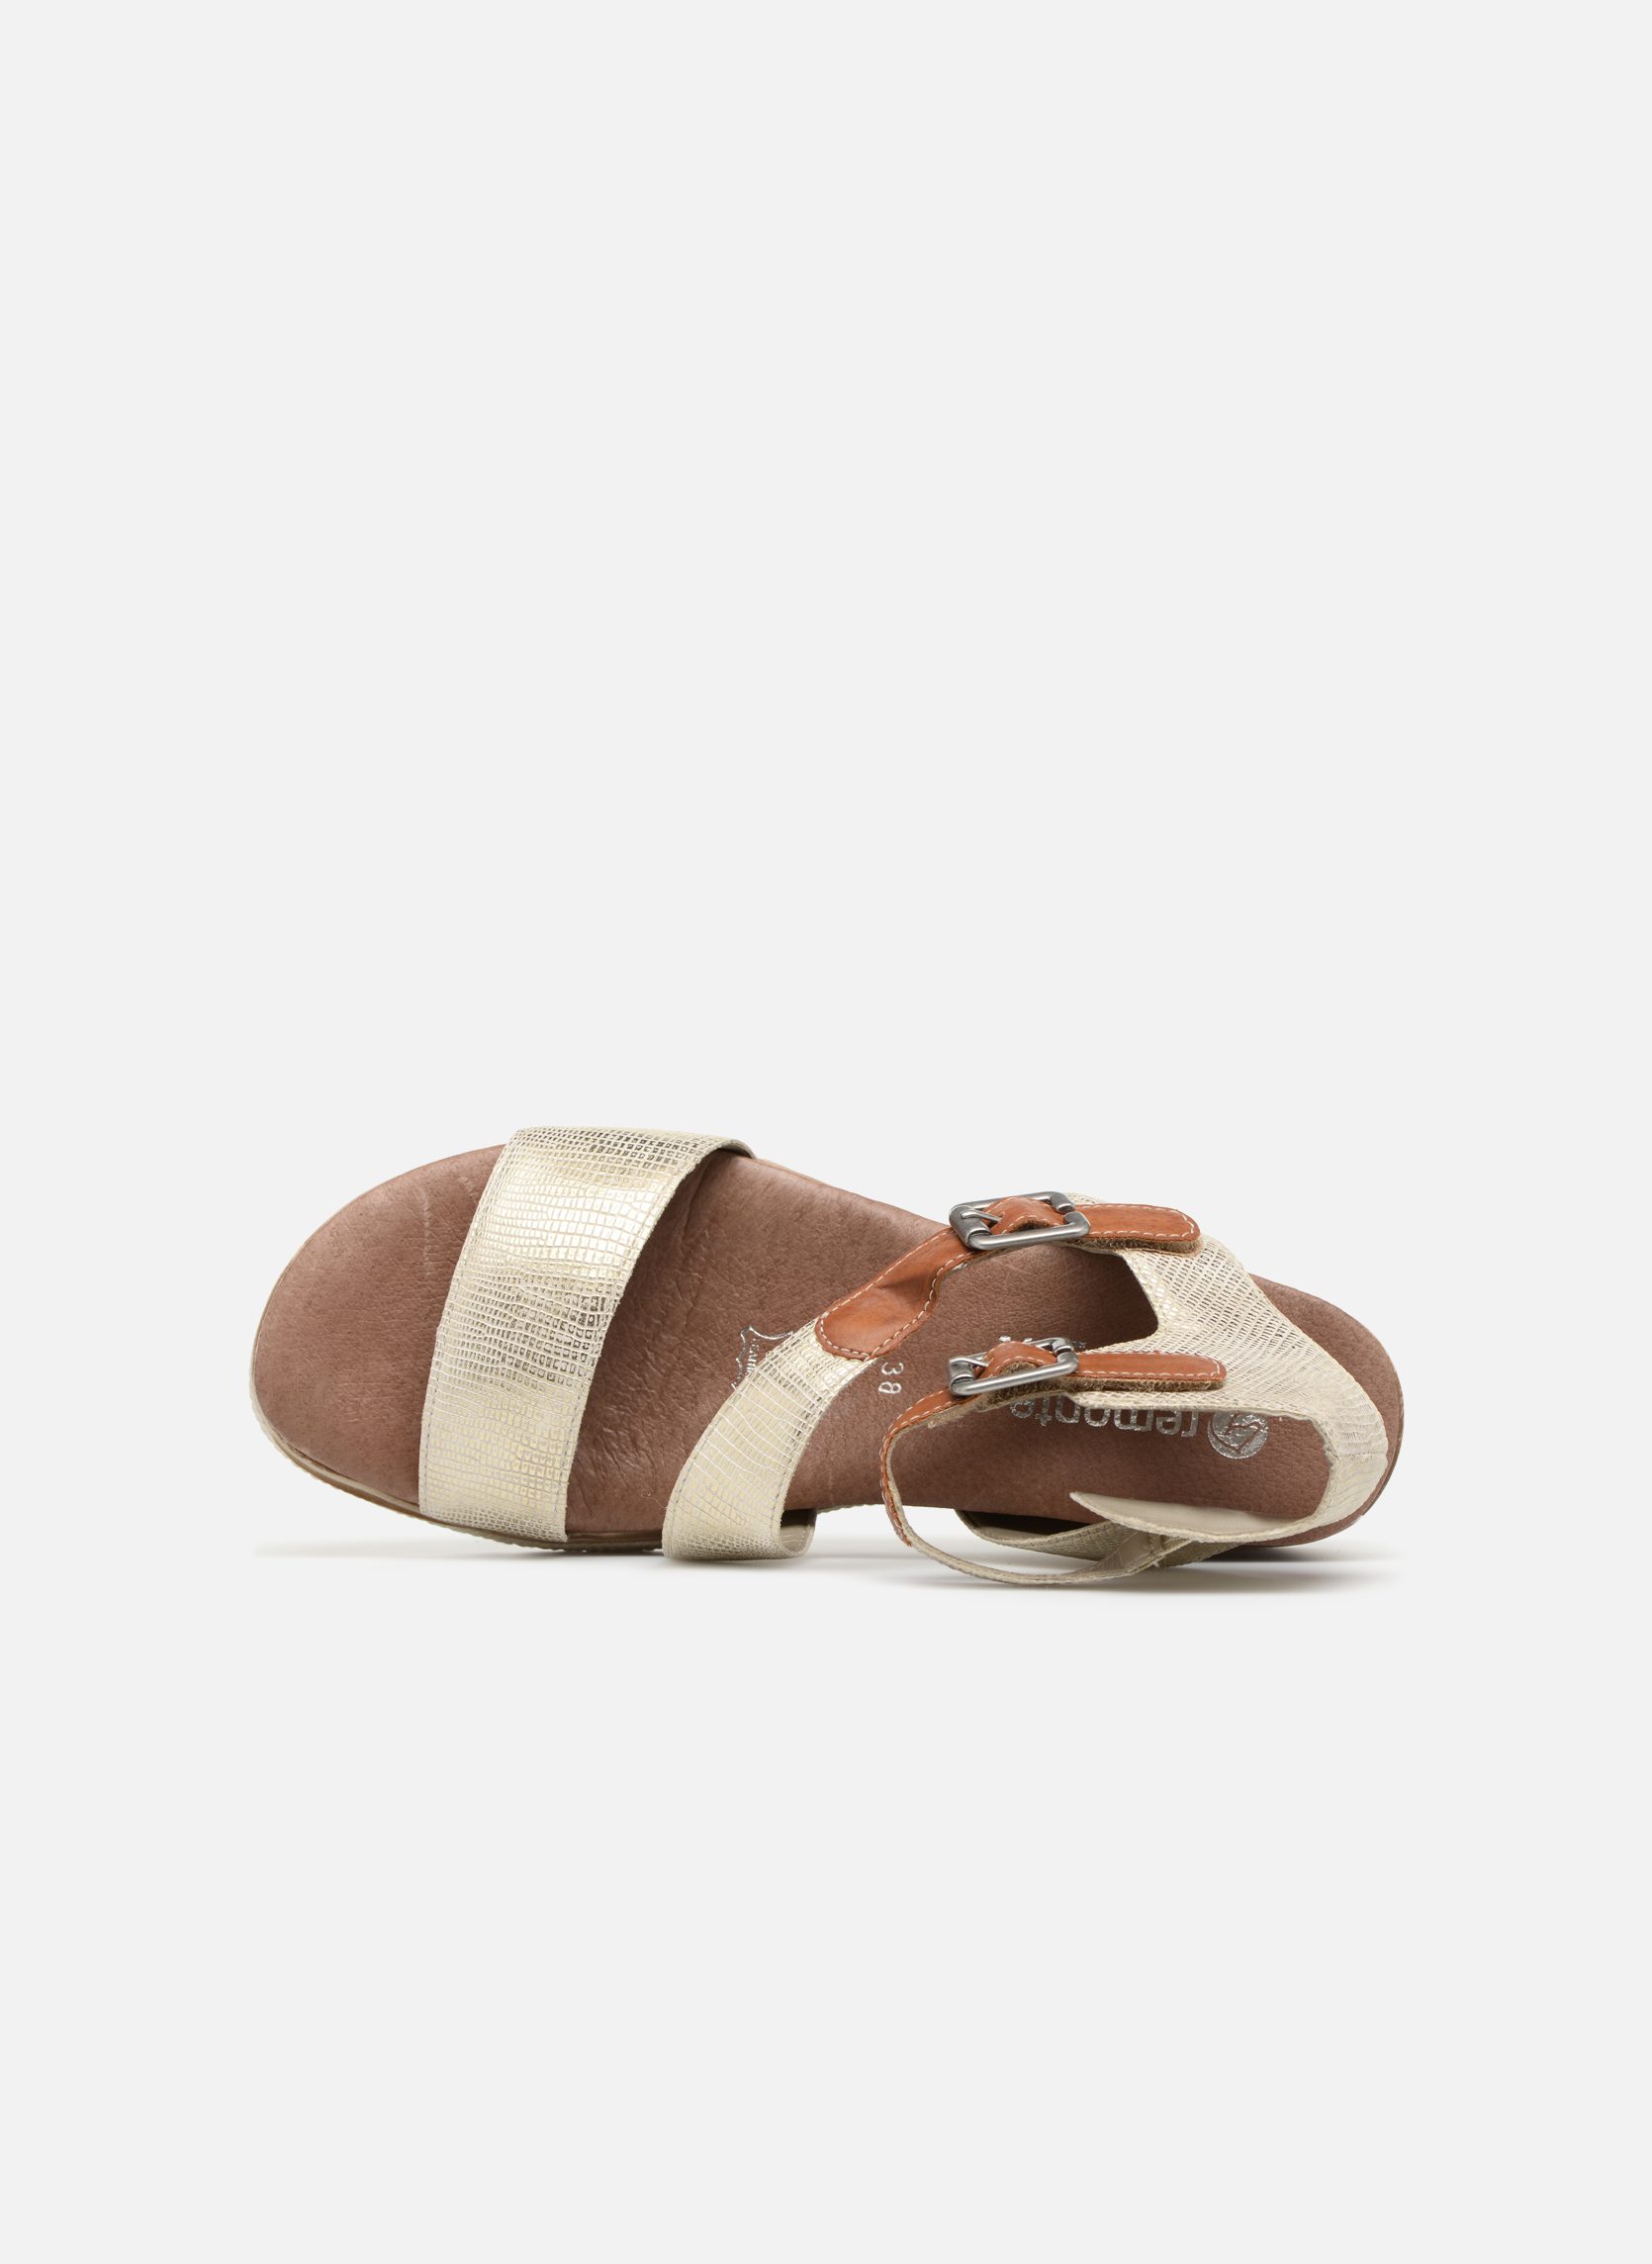 Sandals Remonte Idal D6351 Beige view from the left